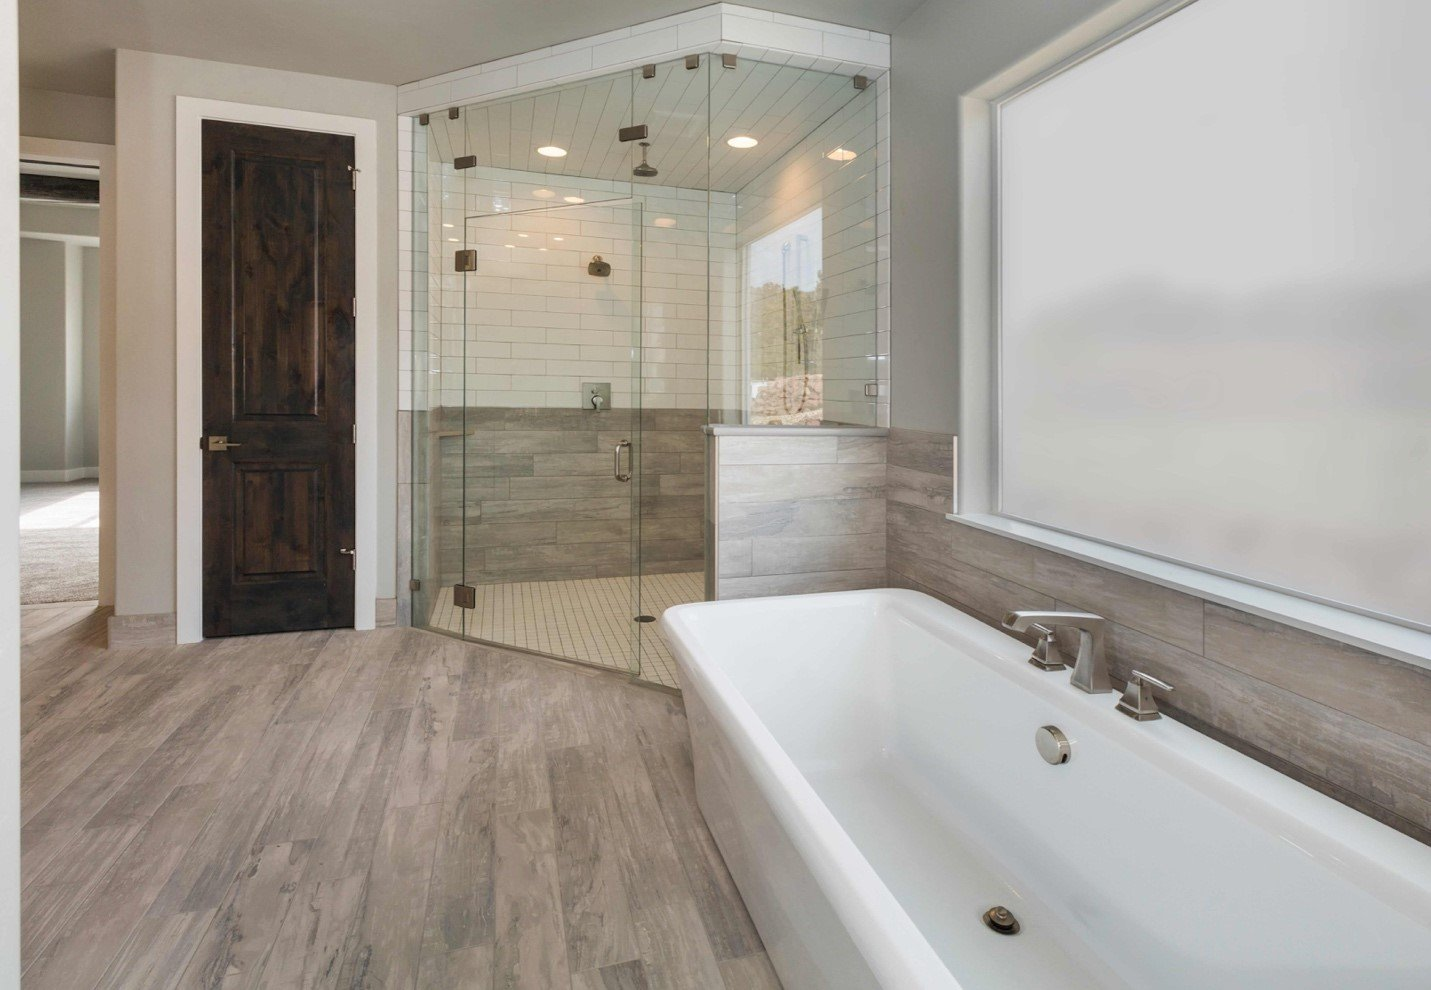 What Type of Shower Doors Can I Install In My Bathroom?